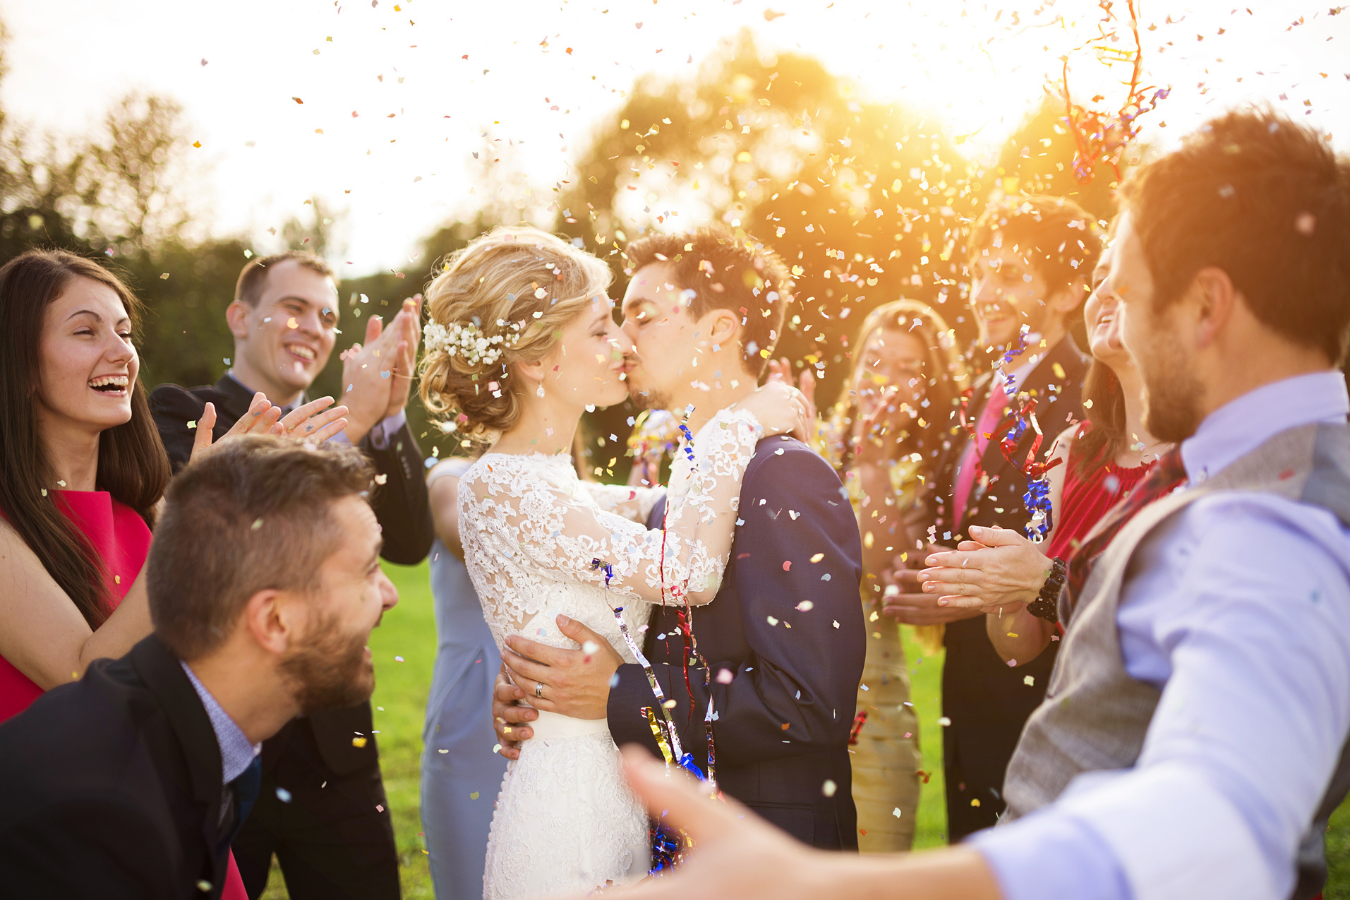 Planning an Outdoor Wedding: Tips for Every Season